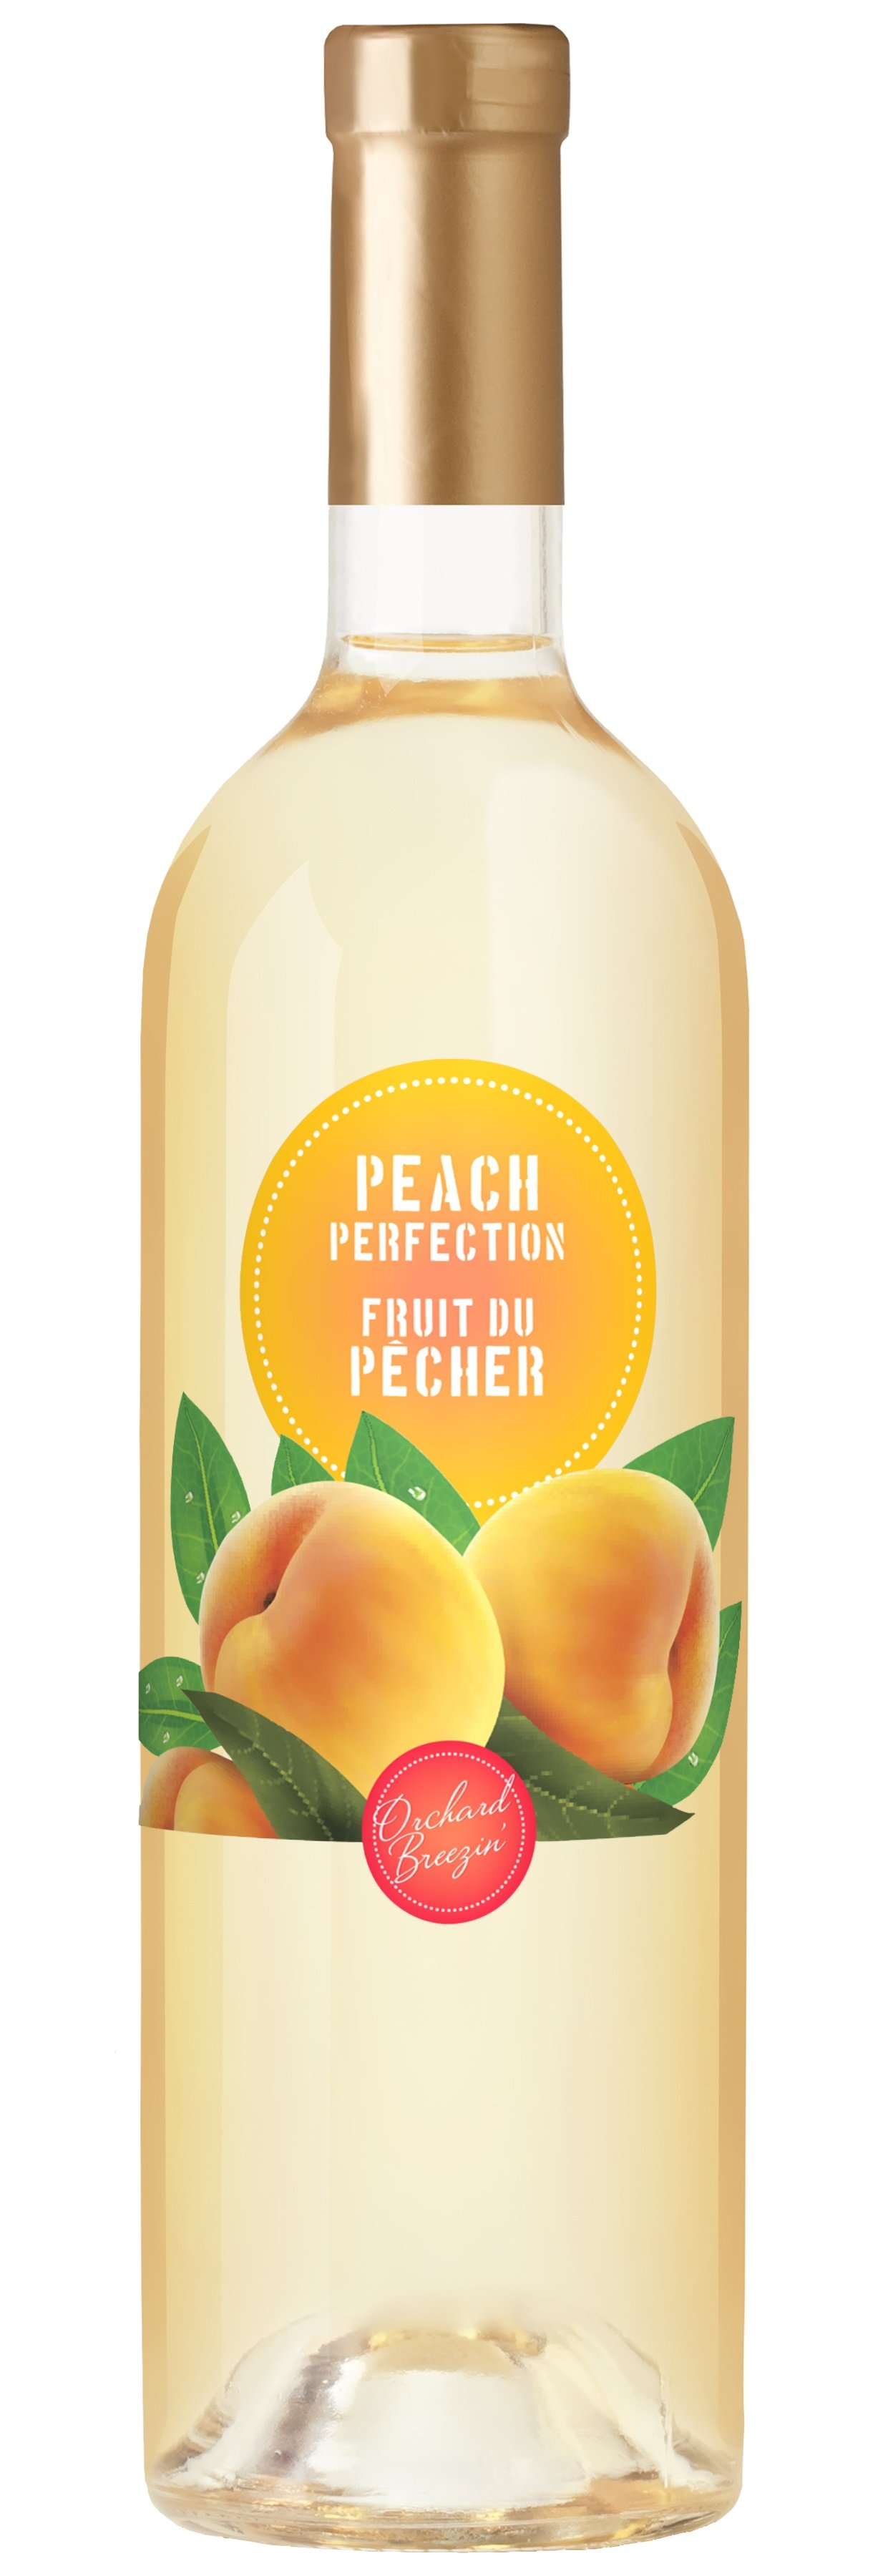 https://0901.nccdn.net/4_2/000/000/038/2d3/OB_Bottle_PeachPerfection.jpg